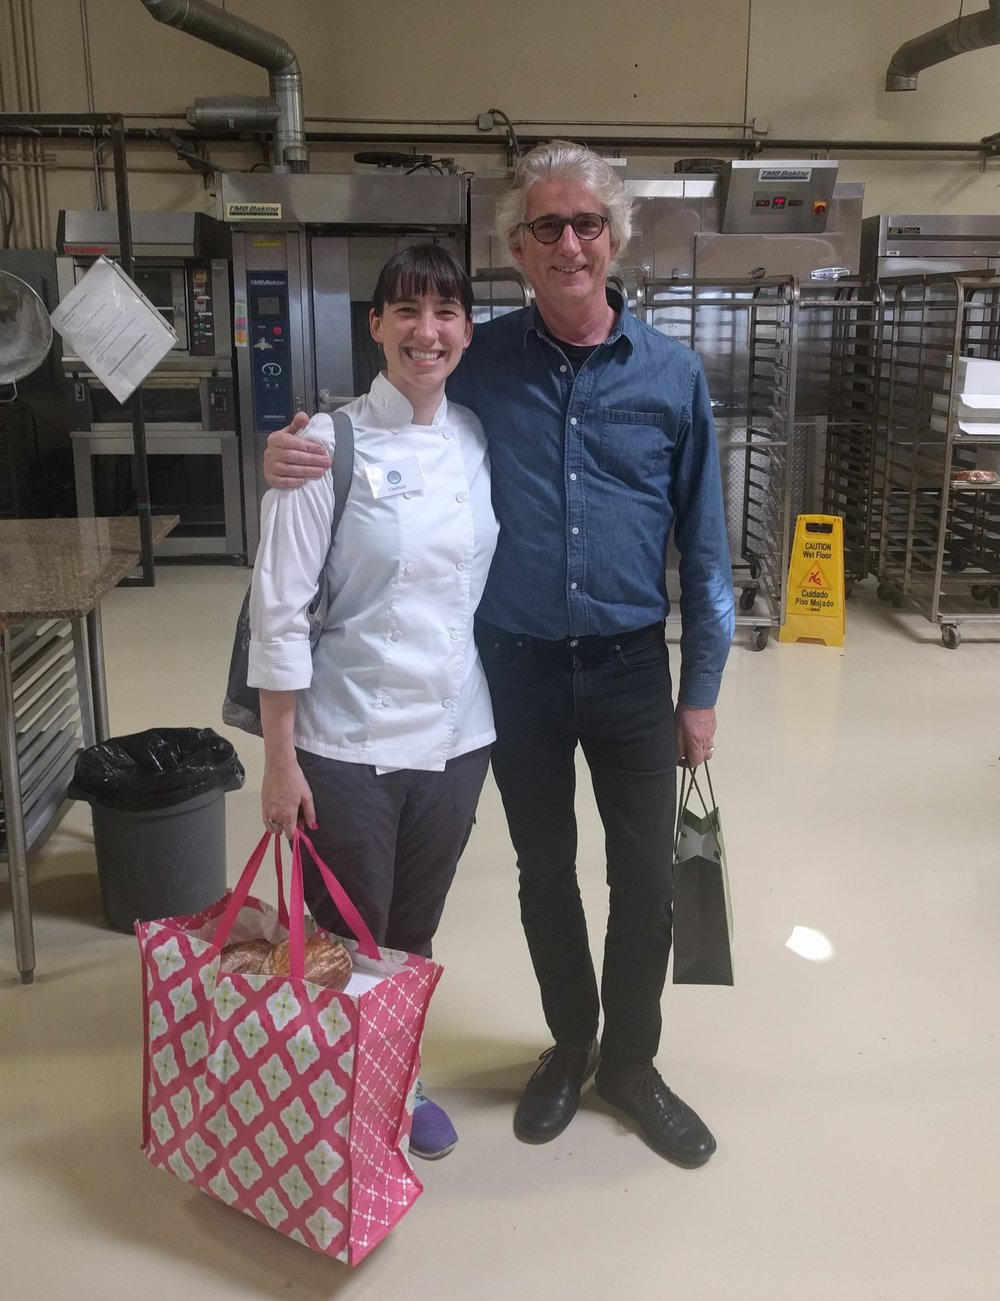 Getting to meet the founder of the San Francisco Baking Institute, Michel Suas ( swoon)